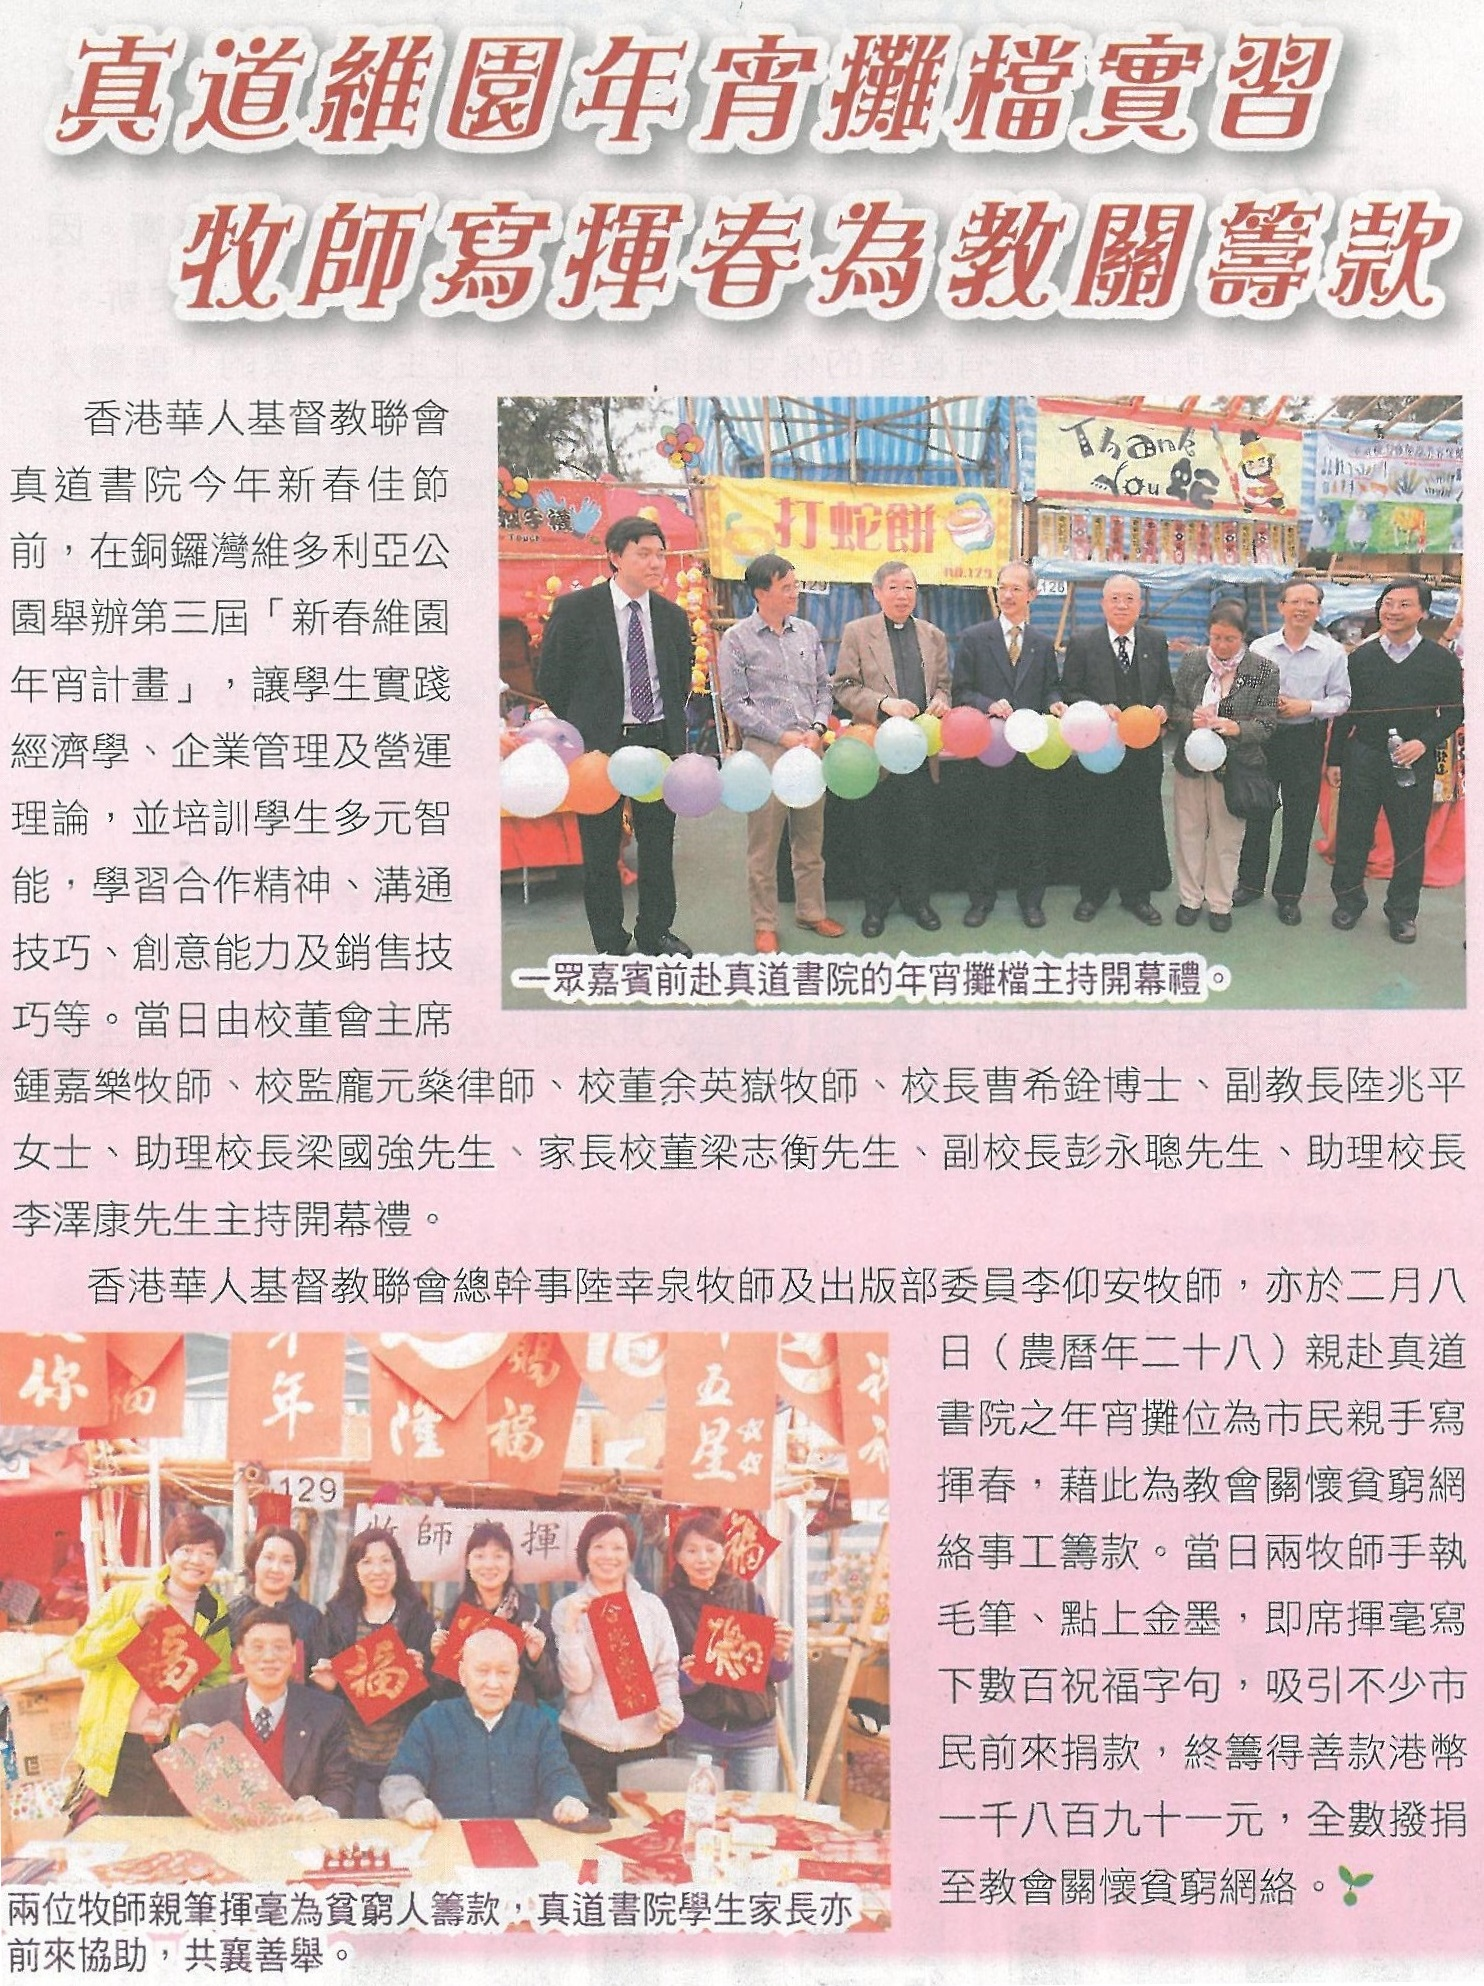 business plan for lunar new year fair stall in hong kong Chinese new year fair which attracted 80,000 people  on 28 november 2015  to identify plans for chinese new year 2017  and abc radio, most wa and  the hong kong australia business association  community associations  participated in the event with over 40 food stalls including chinese.